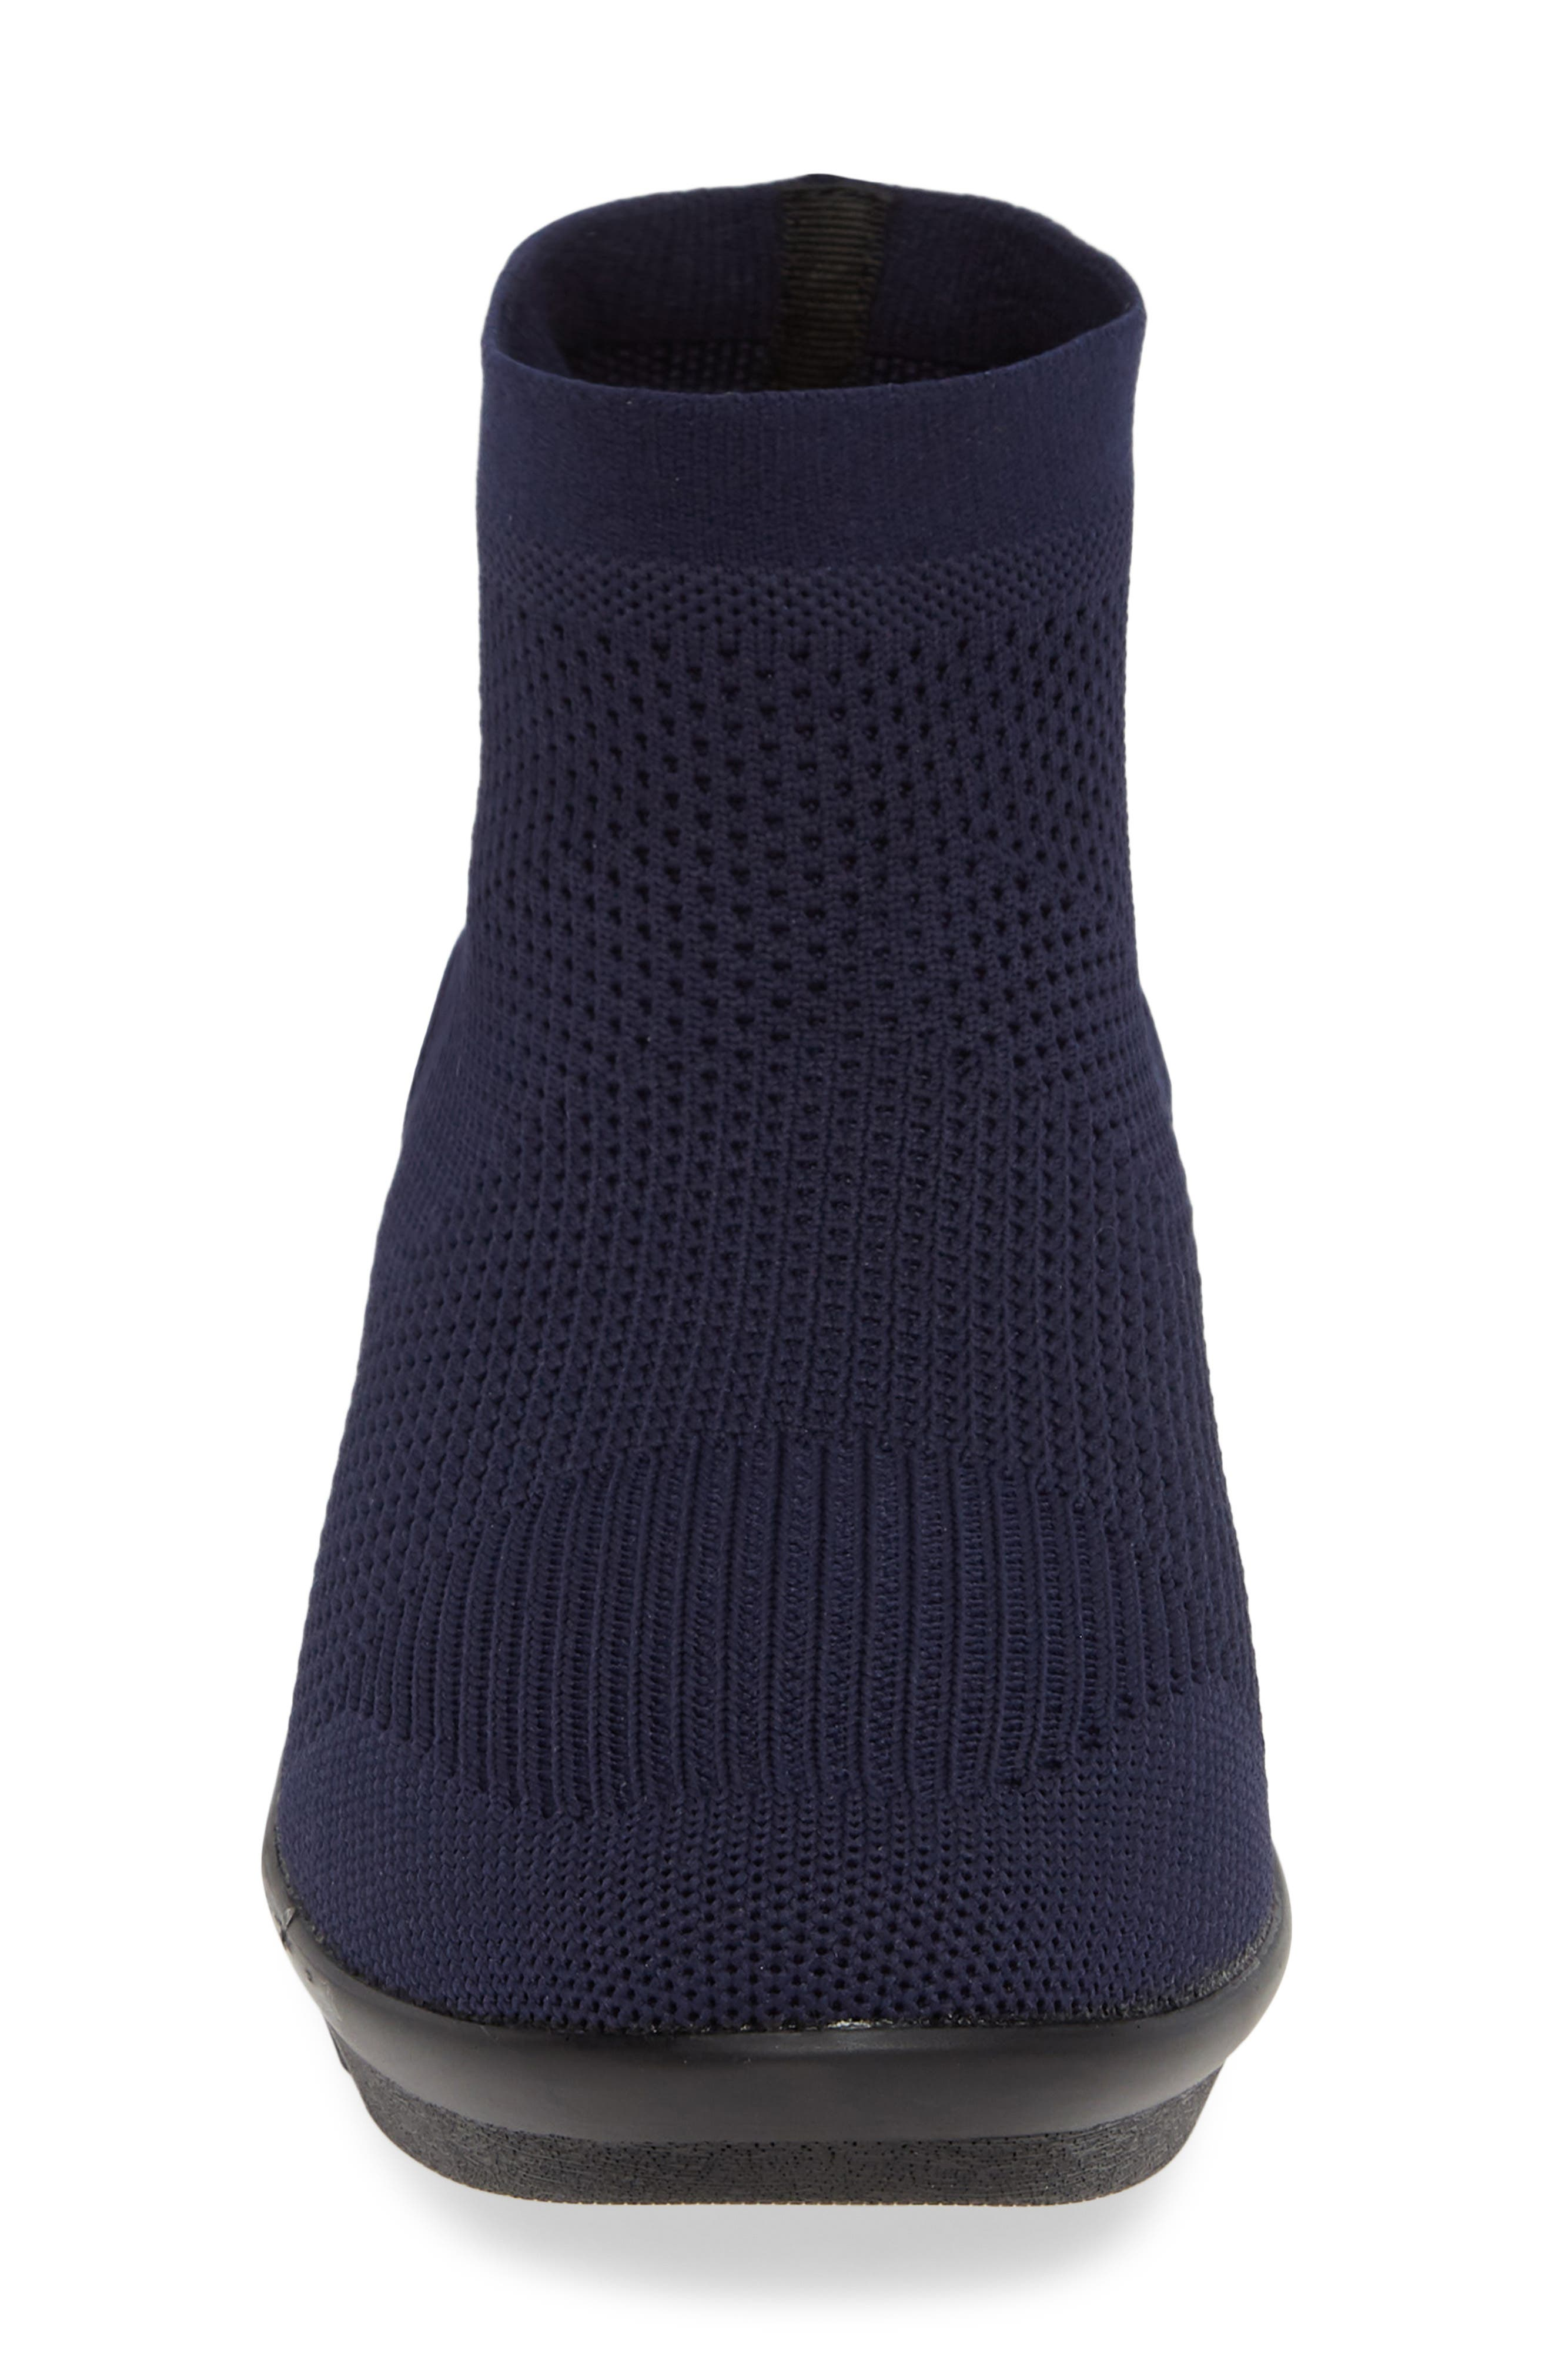 BERNIE MEV., Camryn Knit Bootie, Alternate thumbnail 4, color, NAVY FABRIC